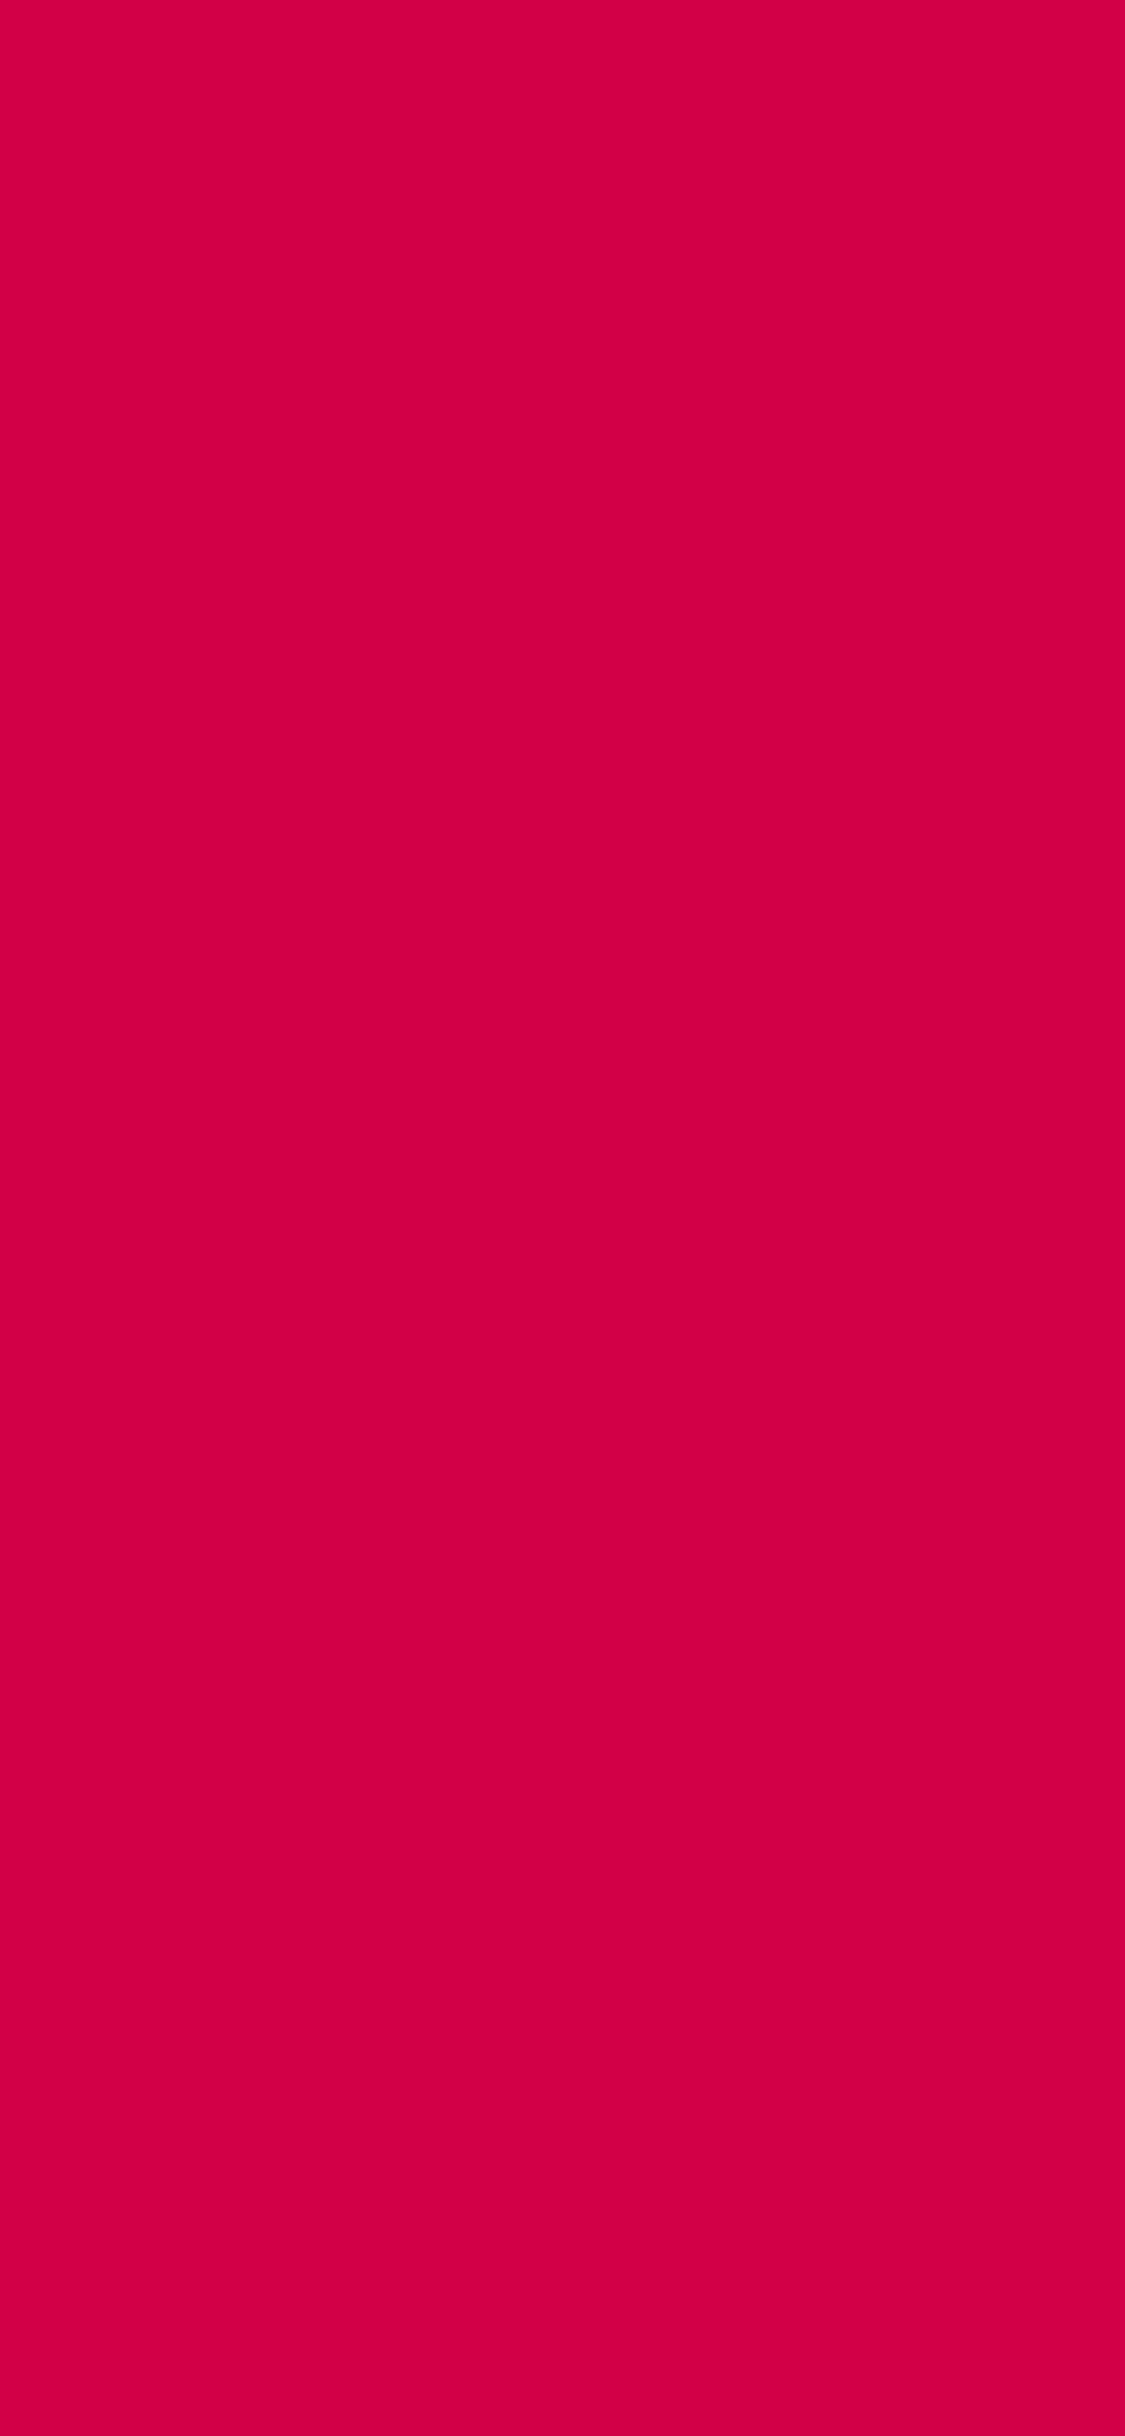 1125x2436 Spanish Carmine Solid Color Background